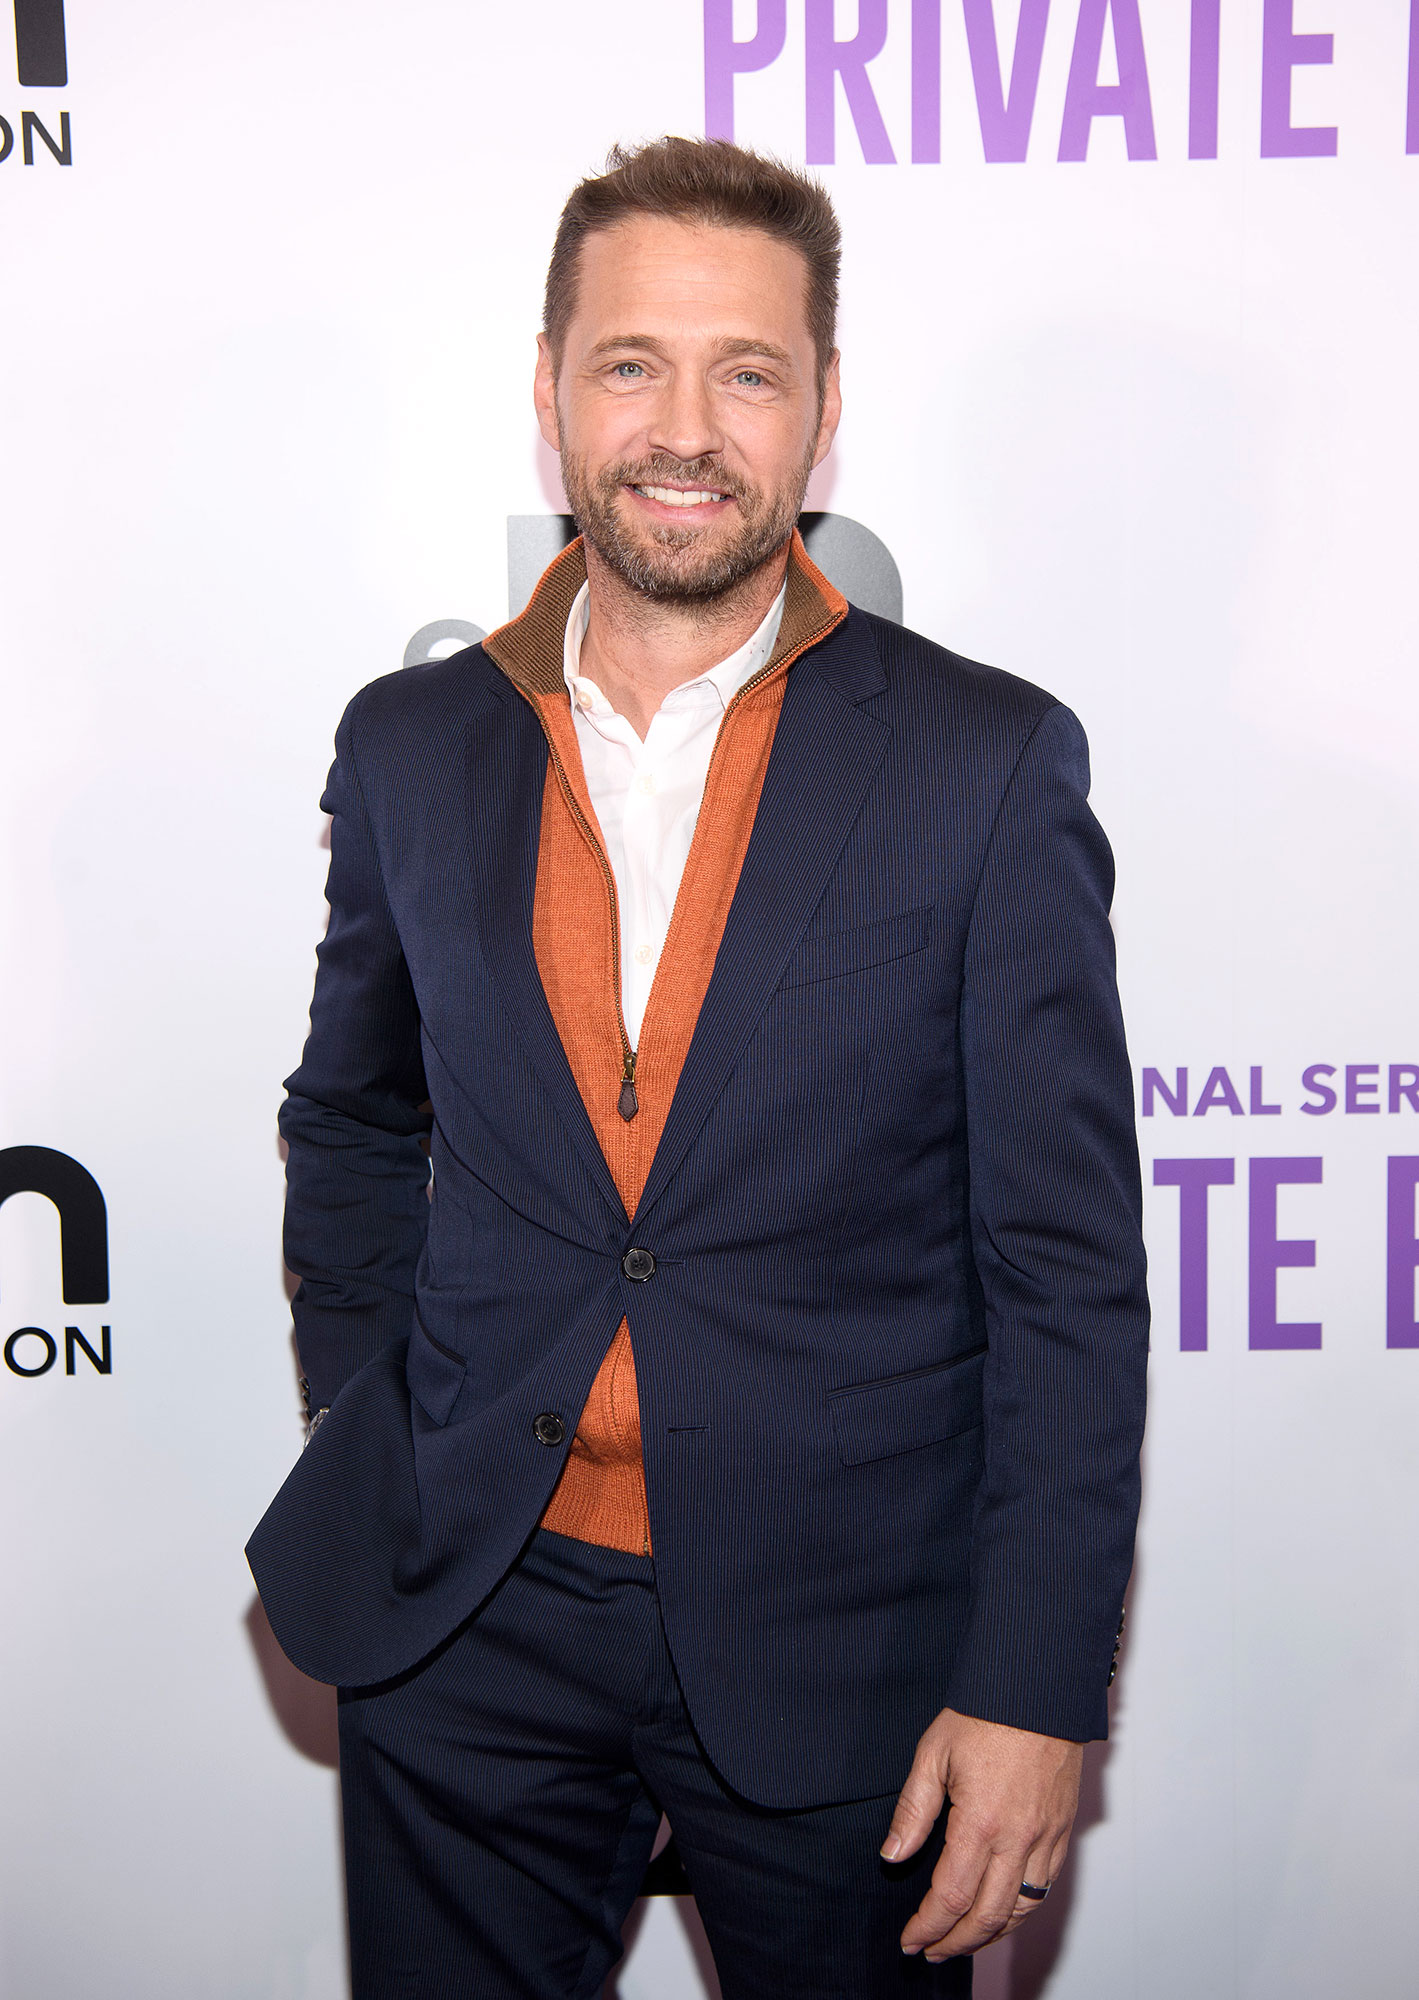 Gallery Overhaul 90210 Then and Now - Priestley, who has played Matt Shade on Global TV's Private Eyes since 2016, will be returning to his former zip code of 90210 when the series' six-episode quasi-reboot airs on Fox in the summer of 2019. He shares a daughter, Ava, and a son, Dashiell, with wife Naomi Lowde-Priestley, whom he married in 2005.